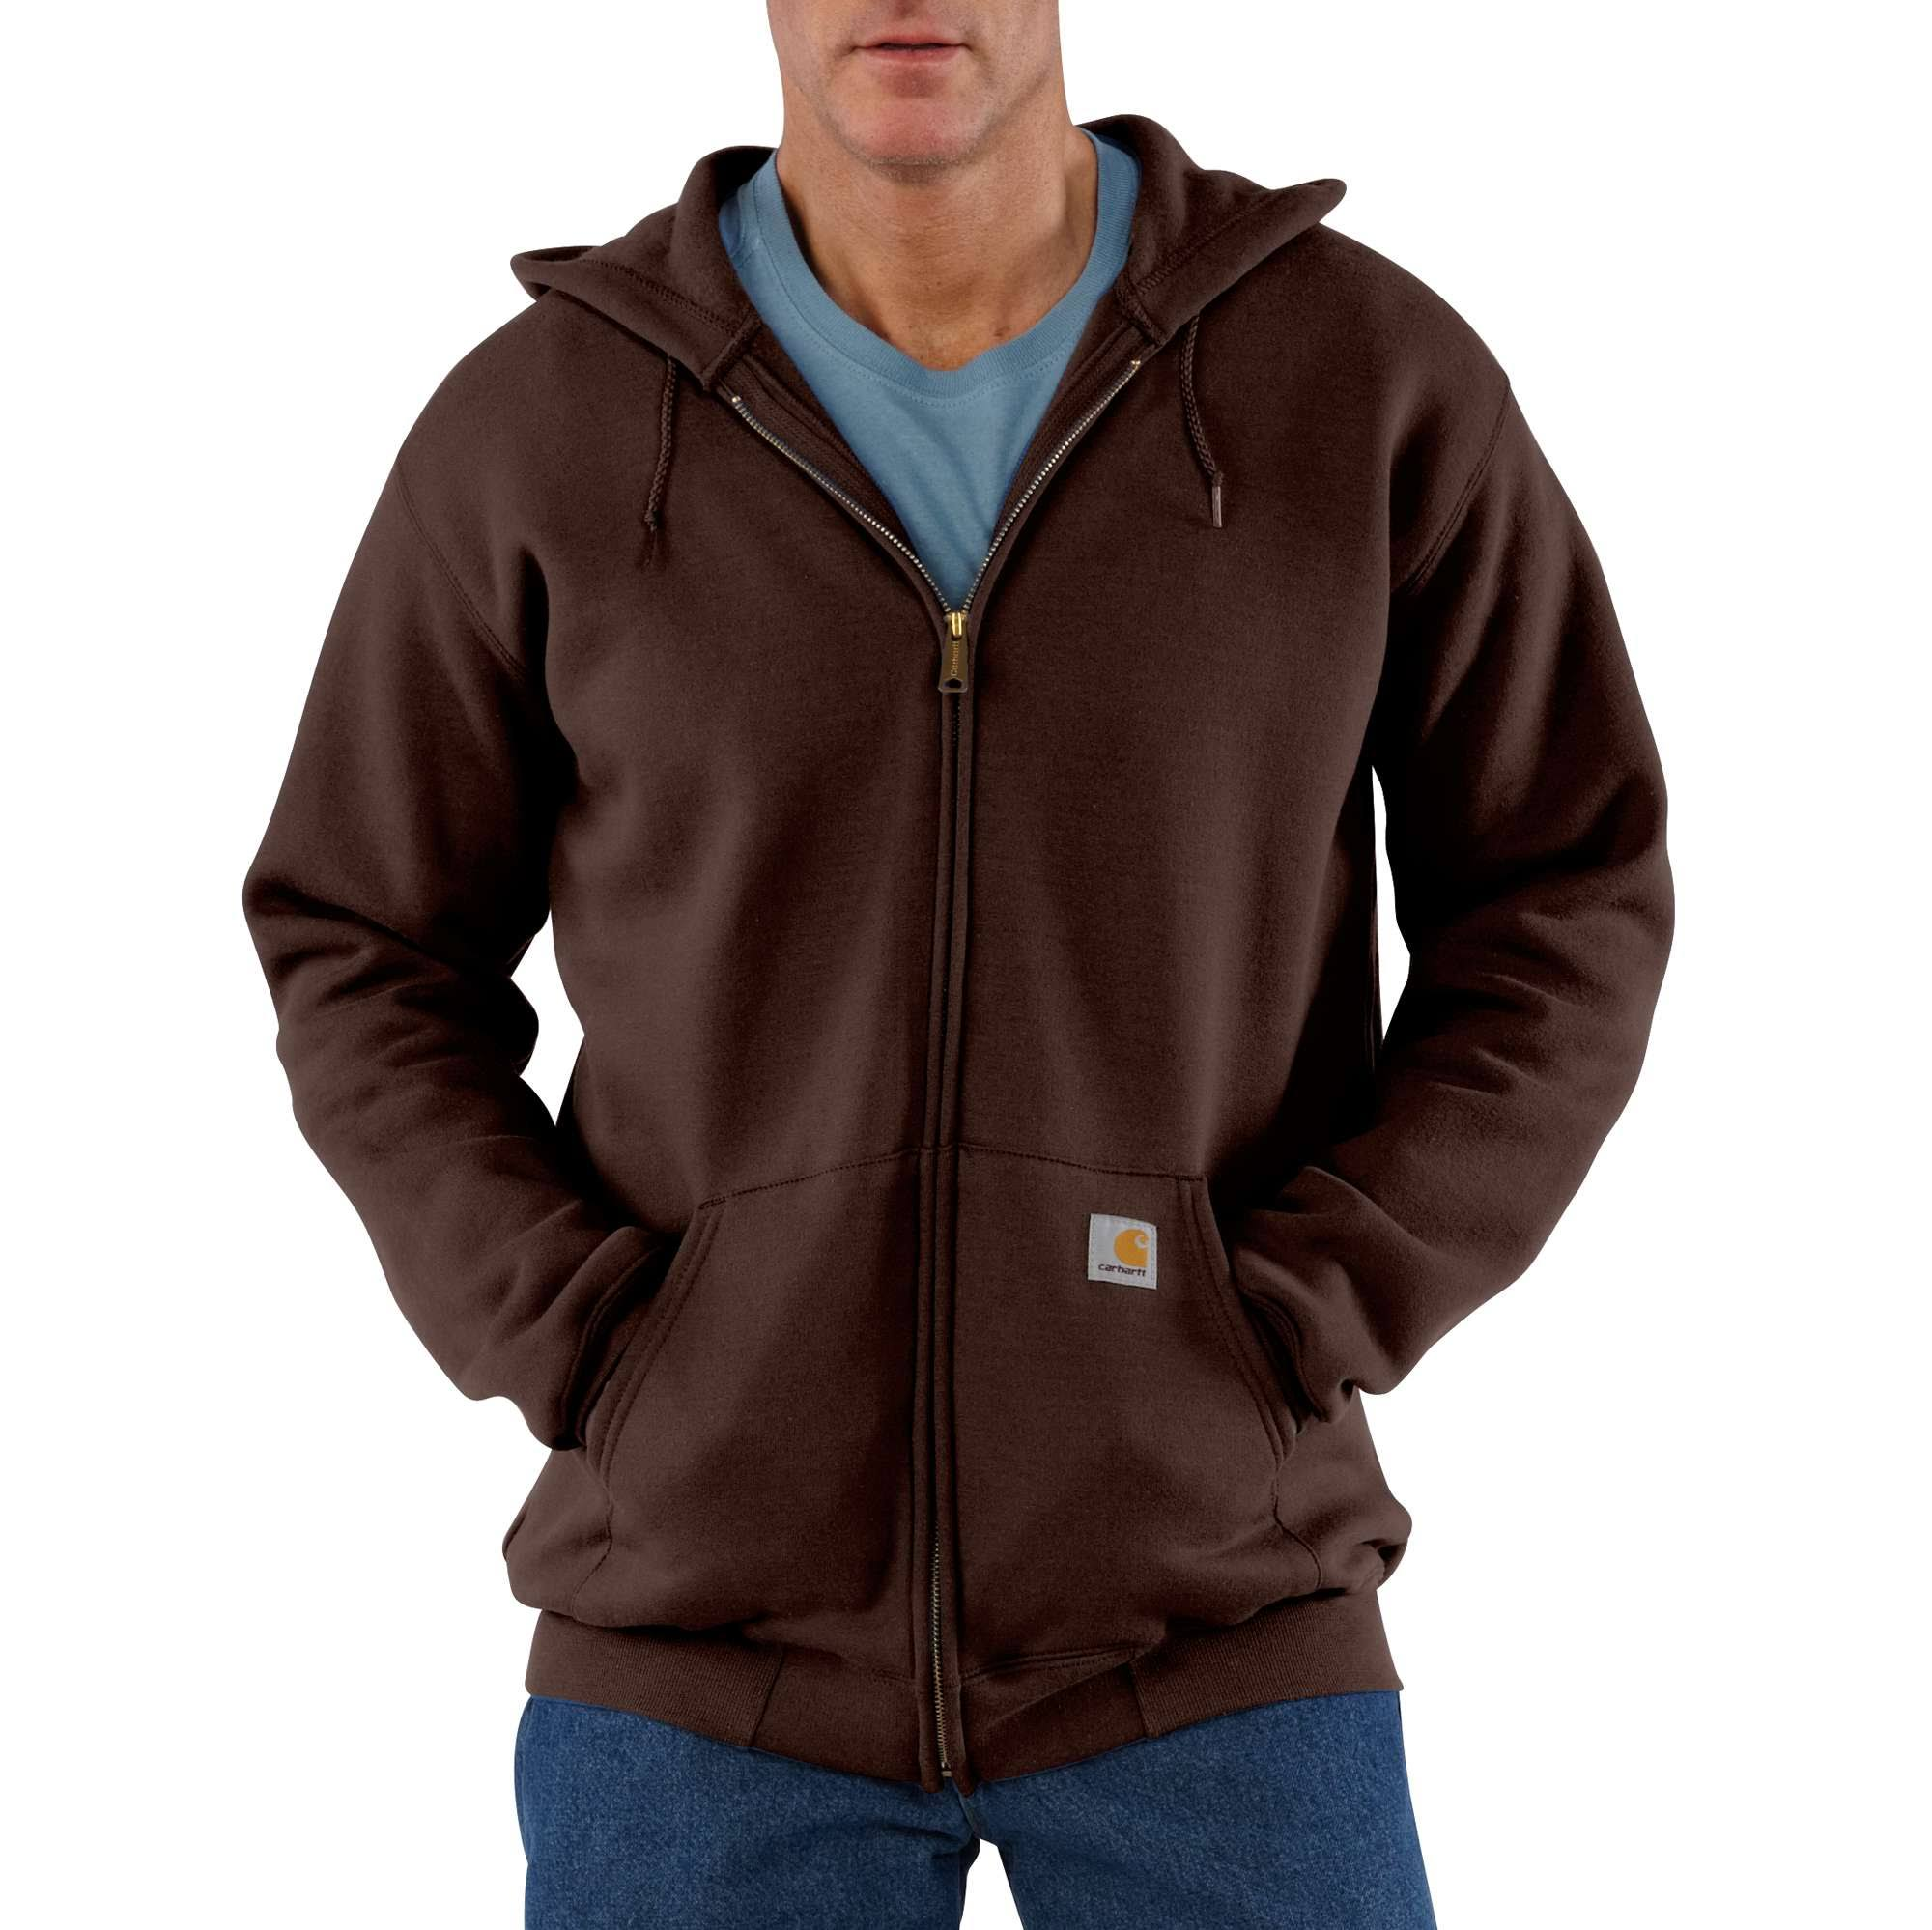 Carhartt Men's Midweight Hooded Zip Front Sweatshirt-Dark Brown-Large